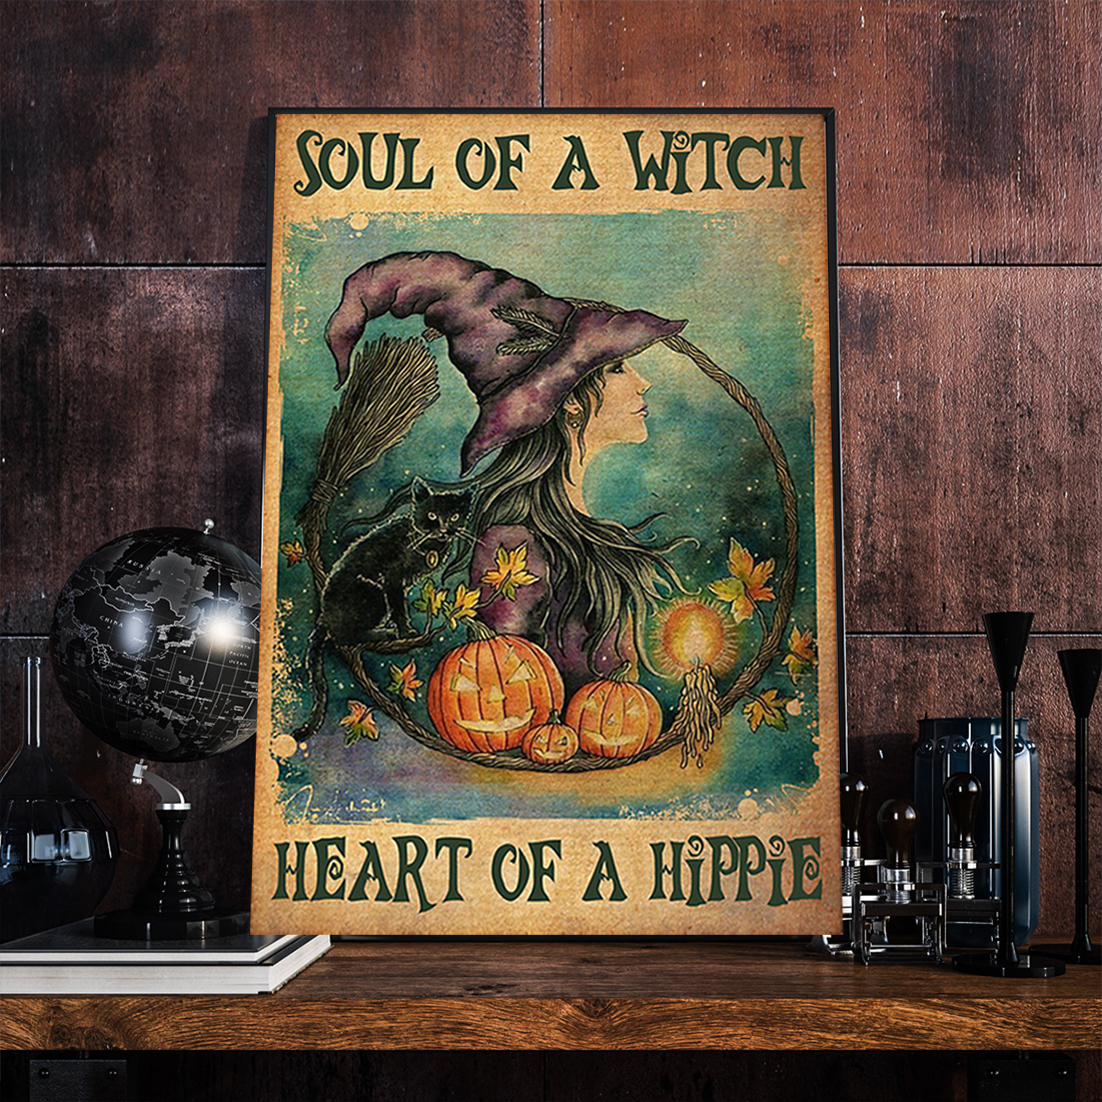 Soul of a witch health of a hippie poster A3